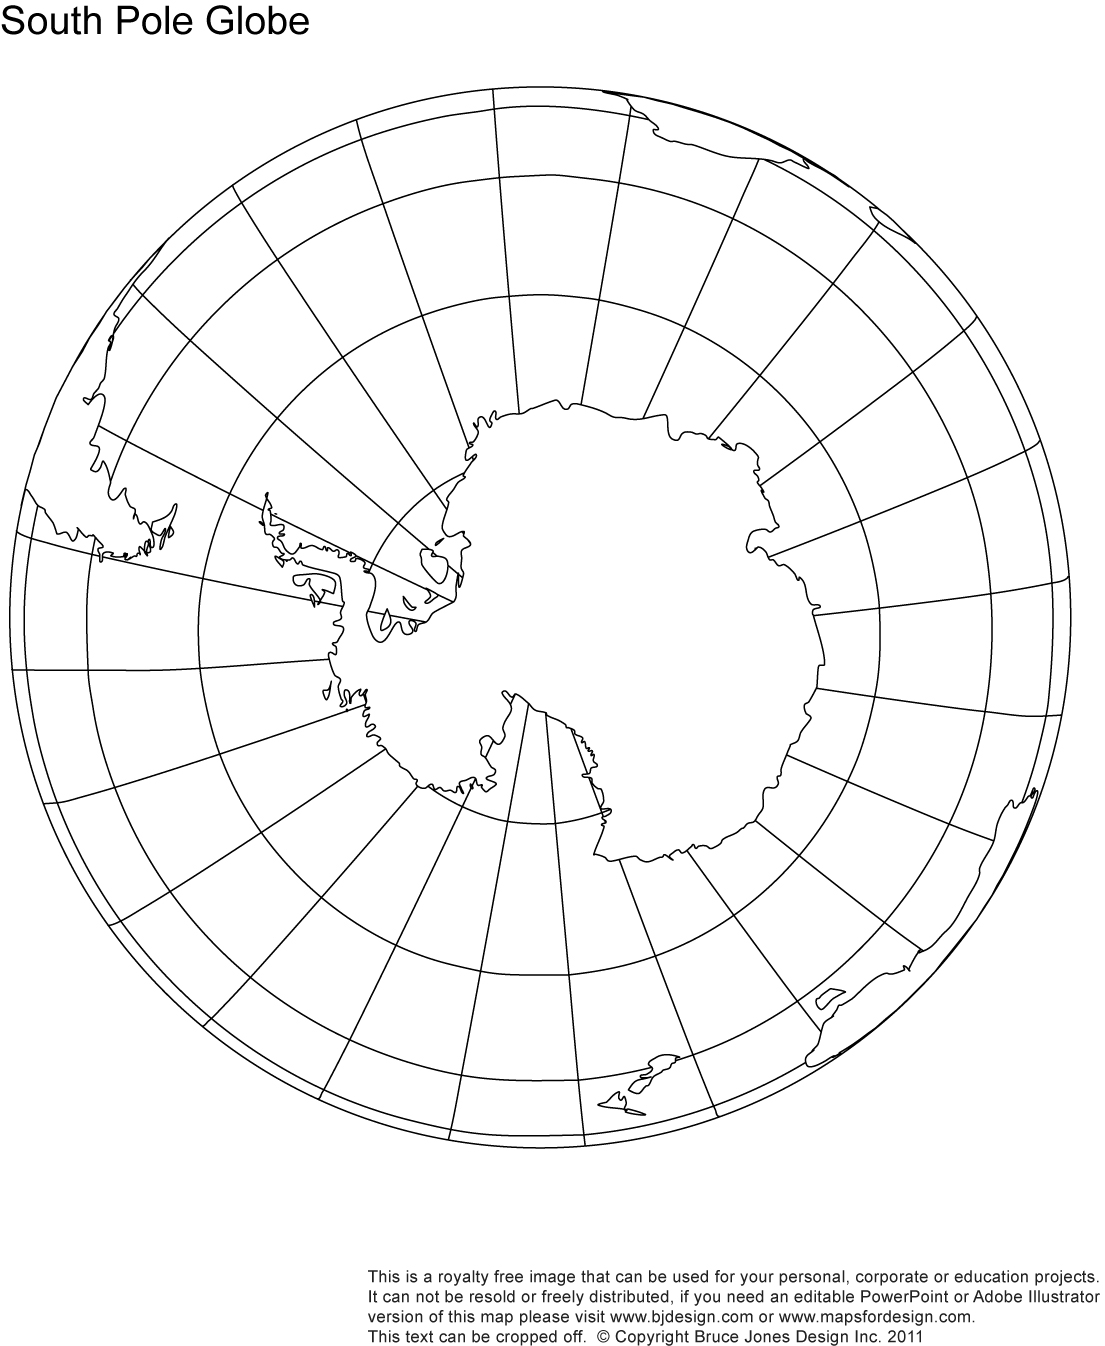 South Pole Globe map, blank, printable, outline, royalty free, jpg map